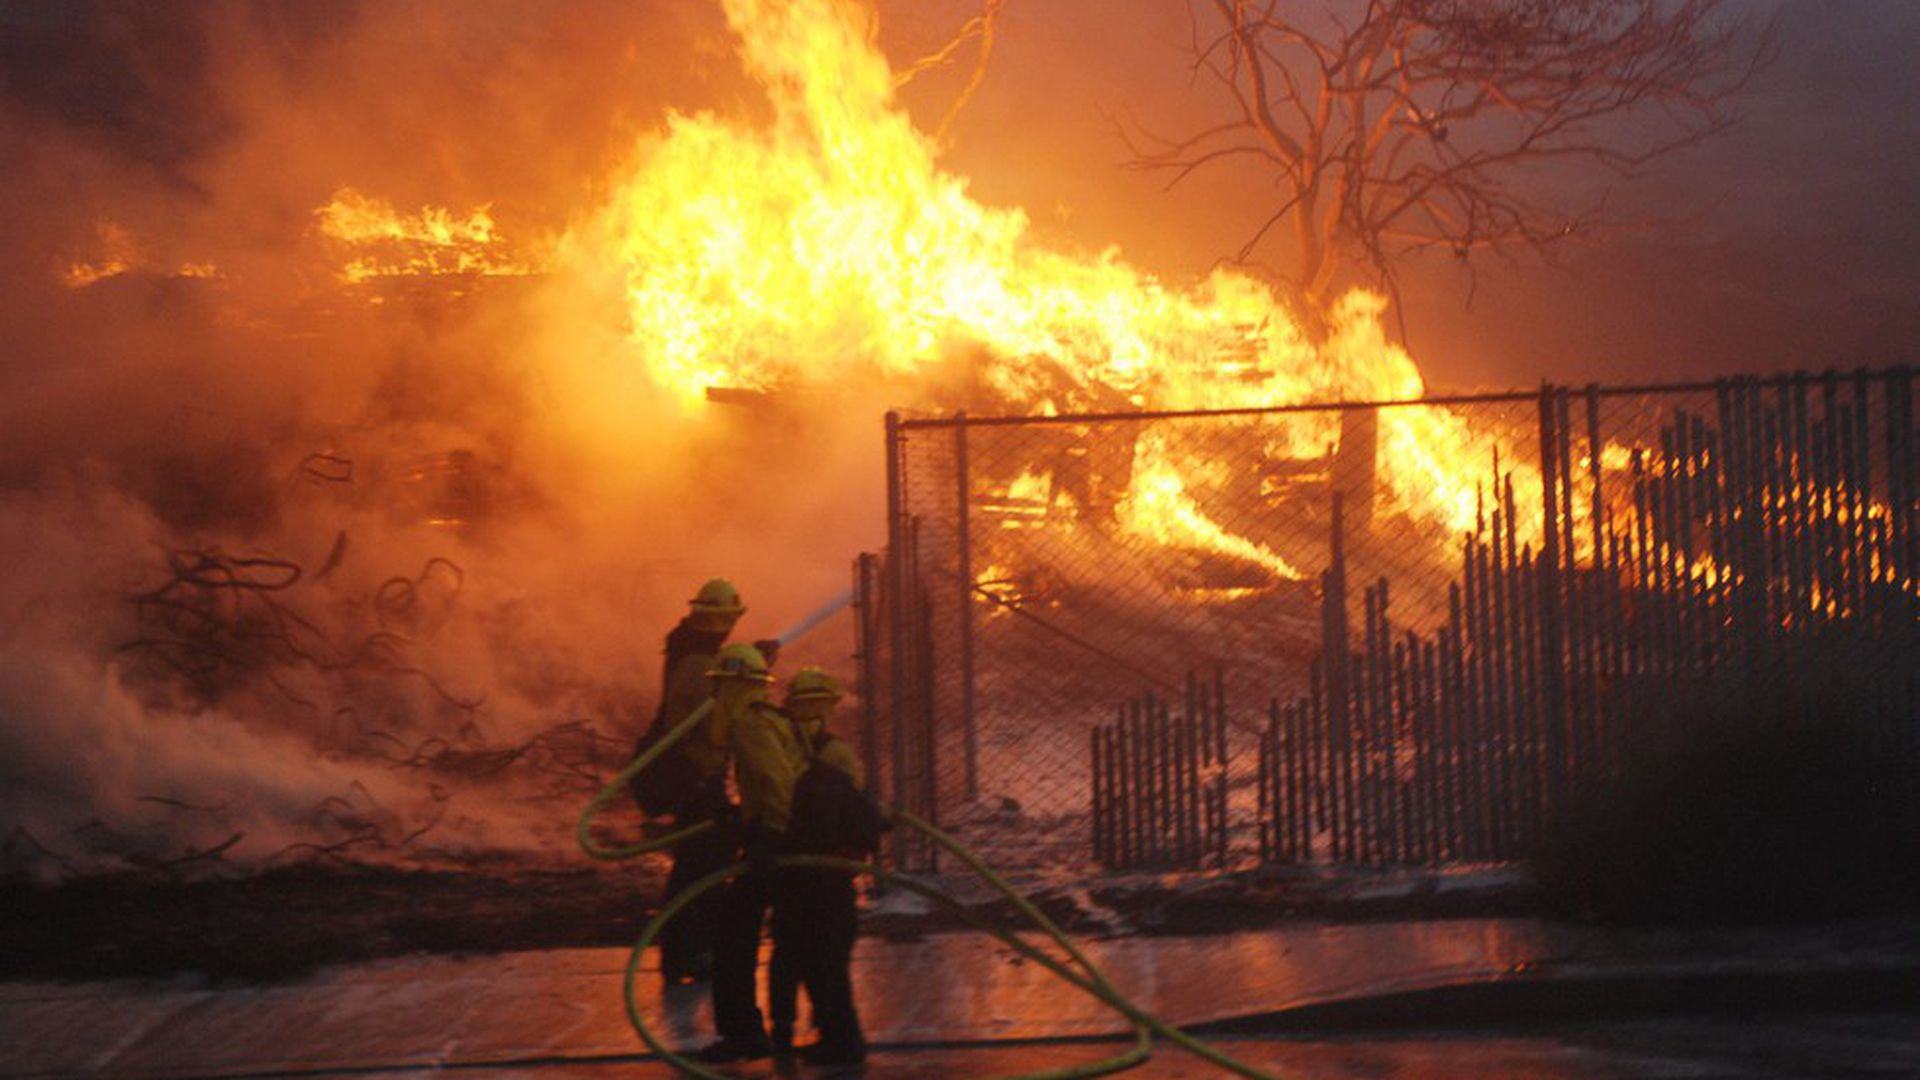 California inmates fighting the record wildfires are likely